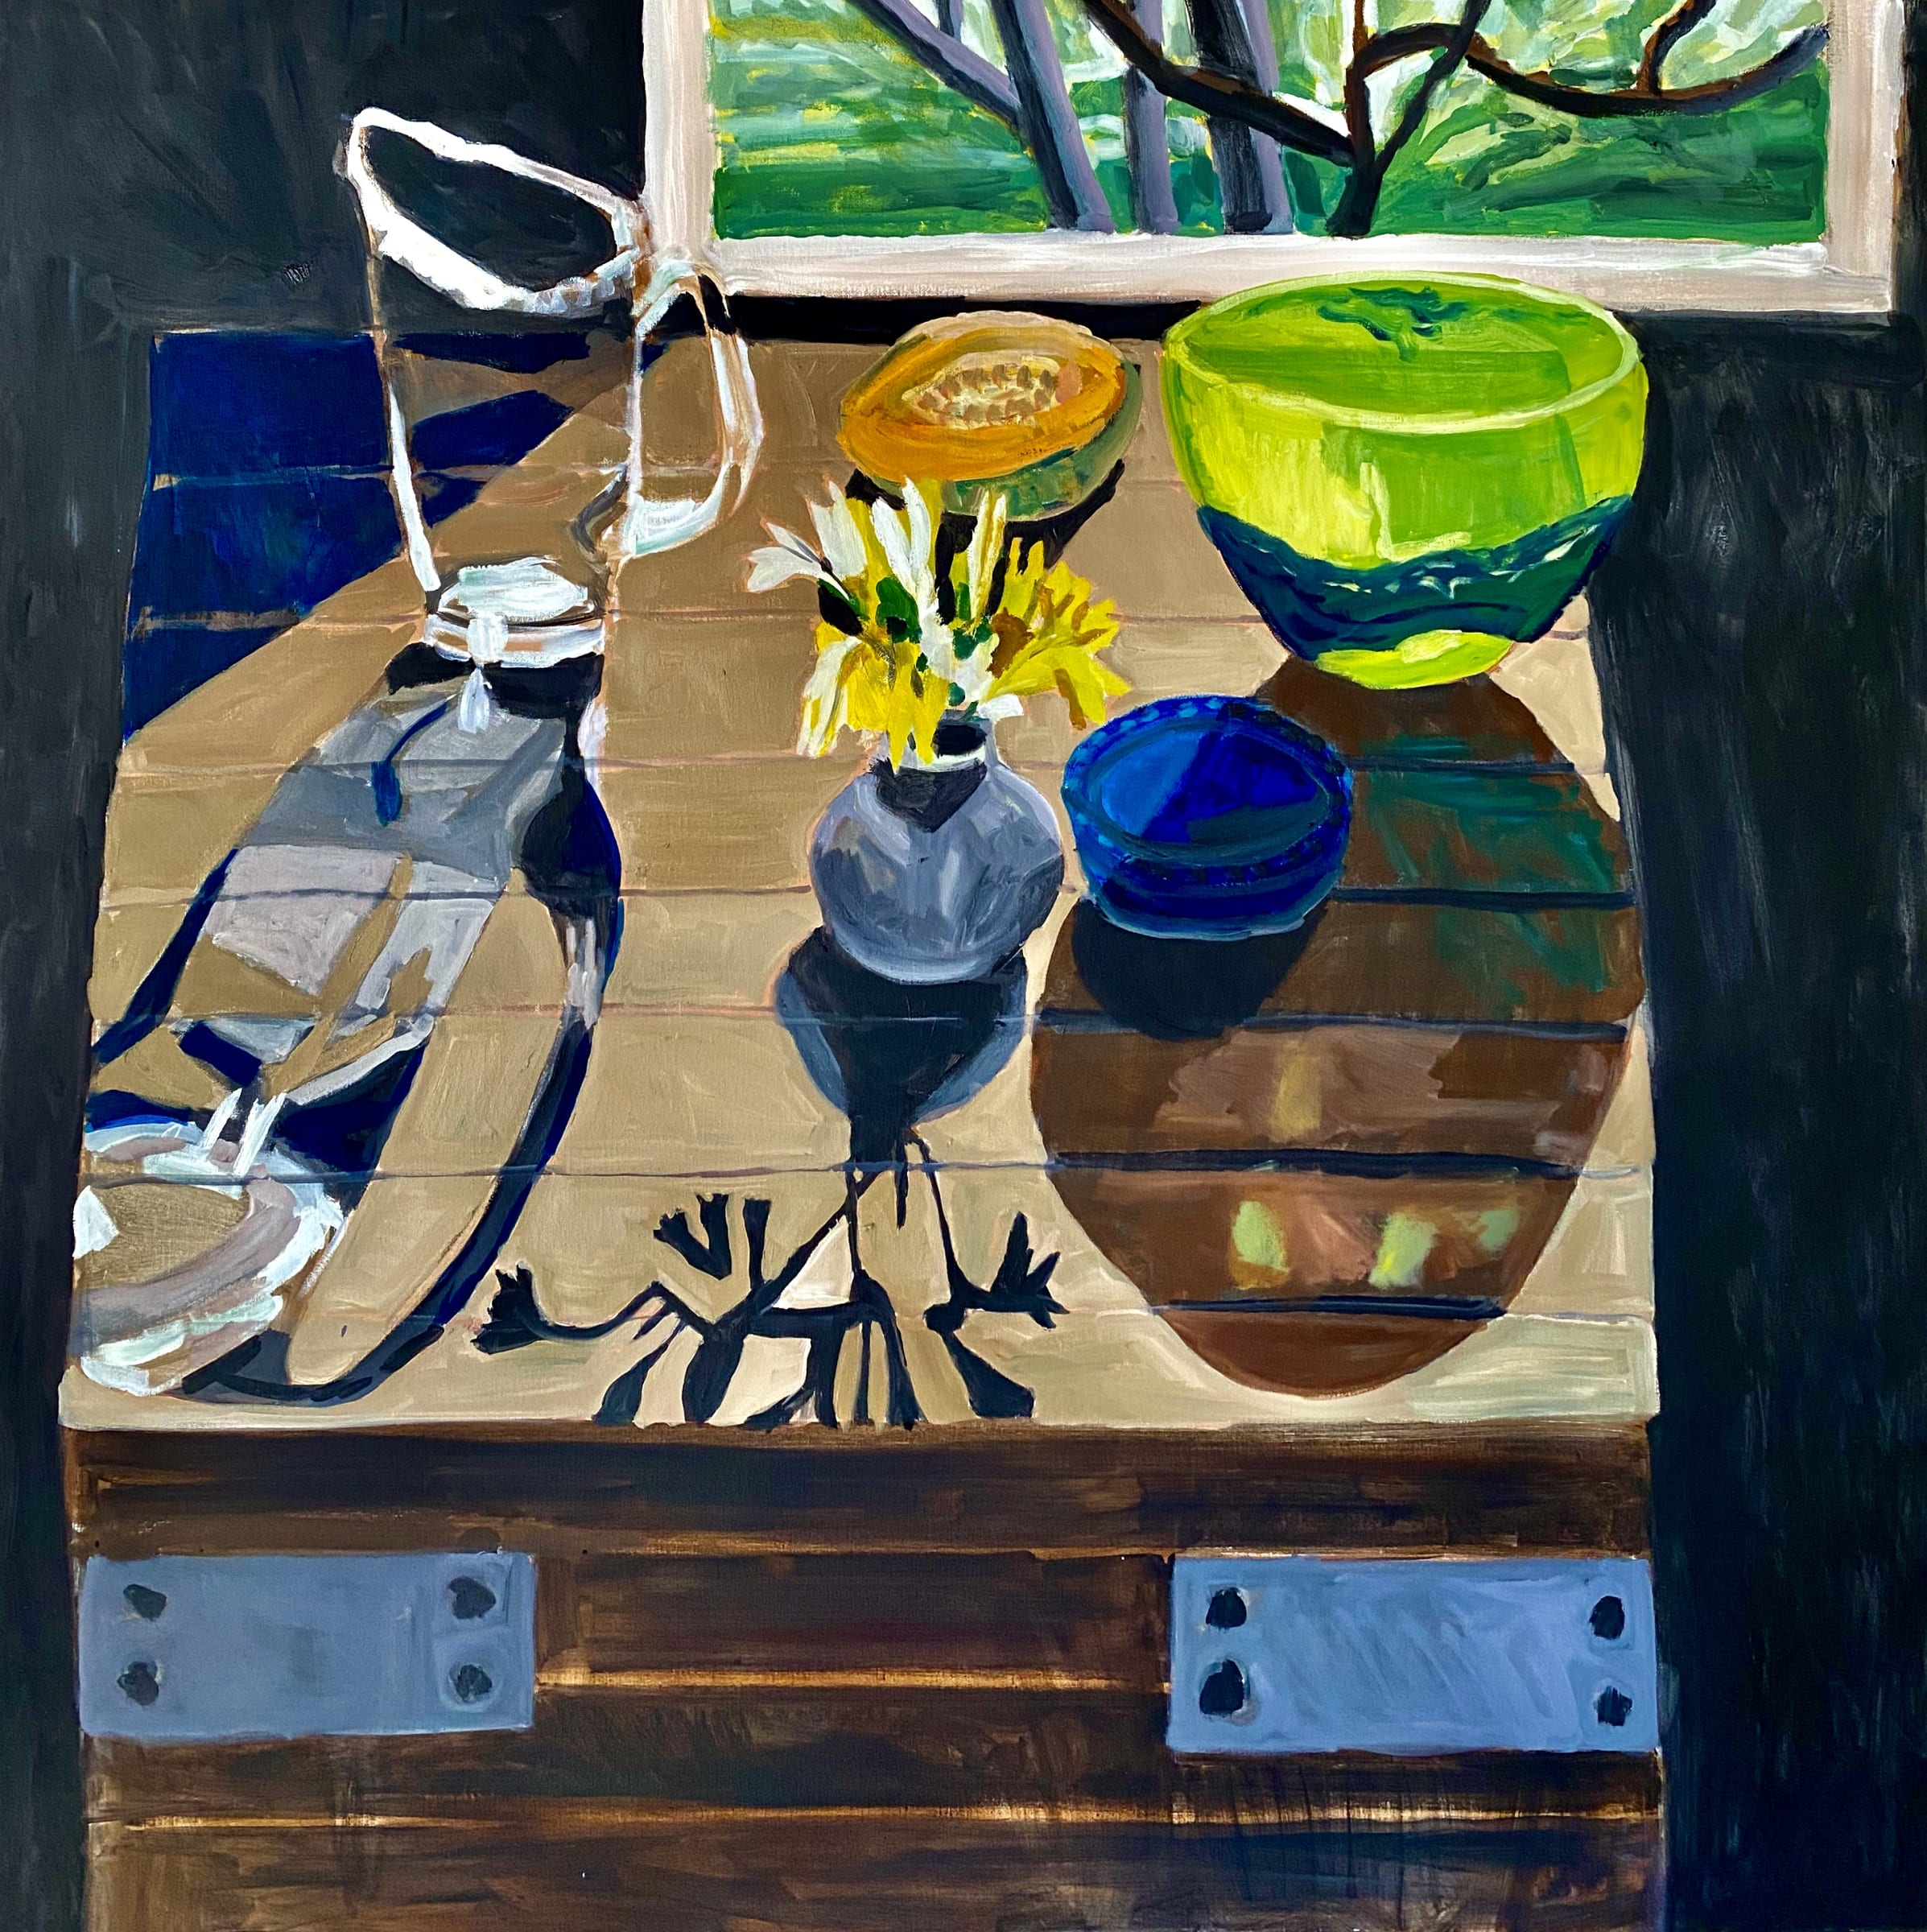 """<span class=""""link fancybox-details-link""""><a href=""""/artists/88-kate-nielsen/works/1248-kate-nielsen-still-life-with-green-bowl/"""">View Detail Page</a></span><div class=""""artist""""><strong>Kate Nielsen</strong></div> <div class=""""title""""><em>Still Life With Green Bowl</em></div> <div class=""""medium"""">Oil on canvas</div> <div class=""""dimensions"""">41 x 41 inches (framed in light Tasmanian oak)</div>"""